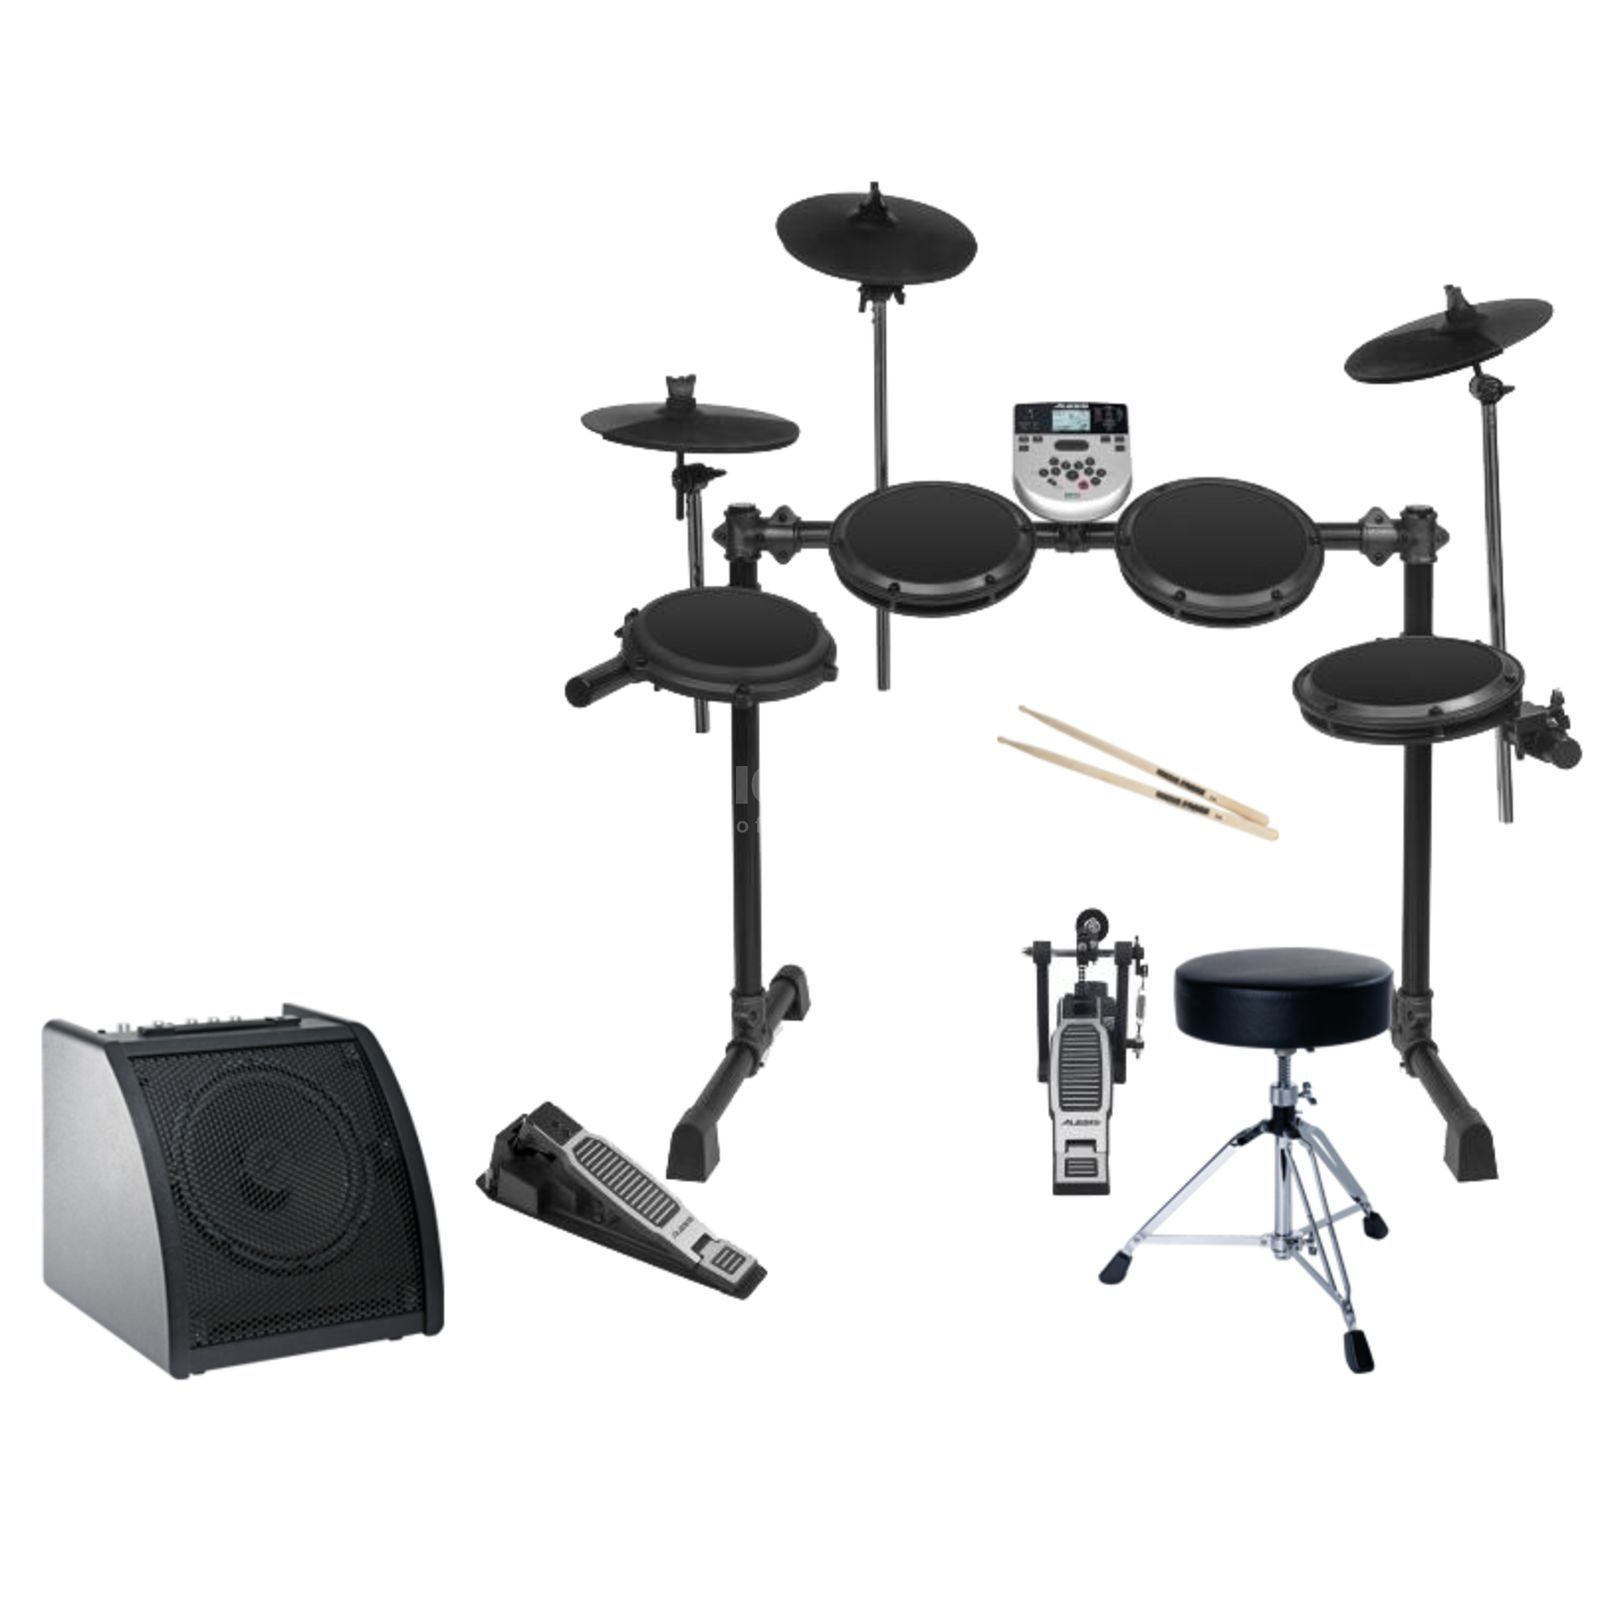 SET ALESISI DM 7X Session Set II, inkl. Monitor, Hocker & Stix Produktbillede